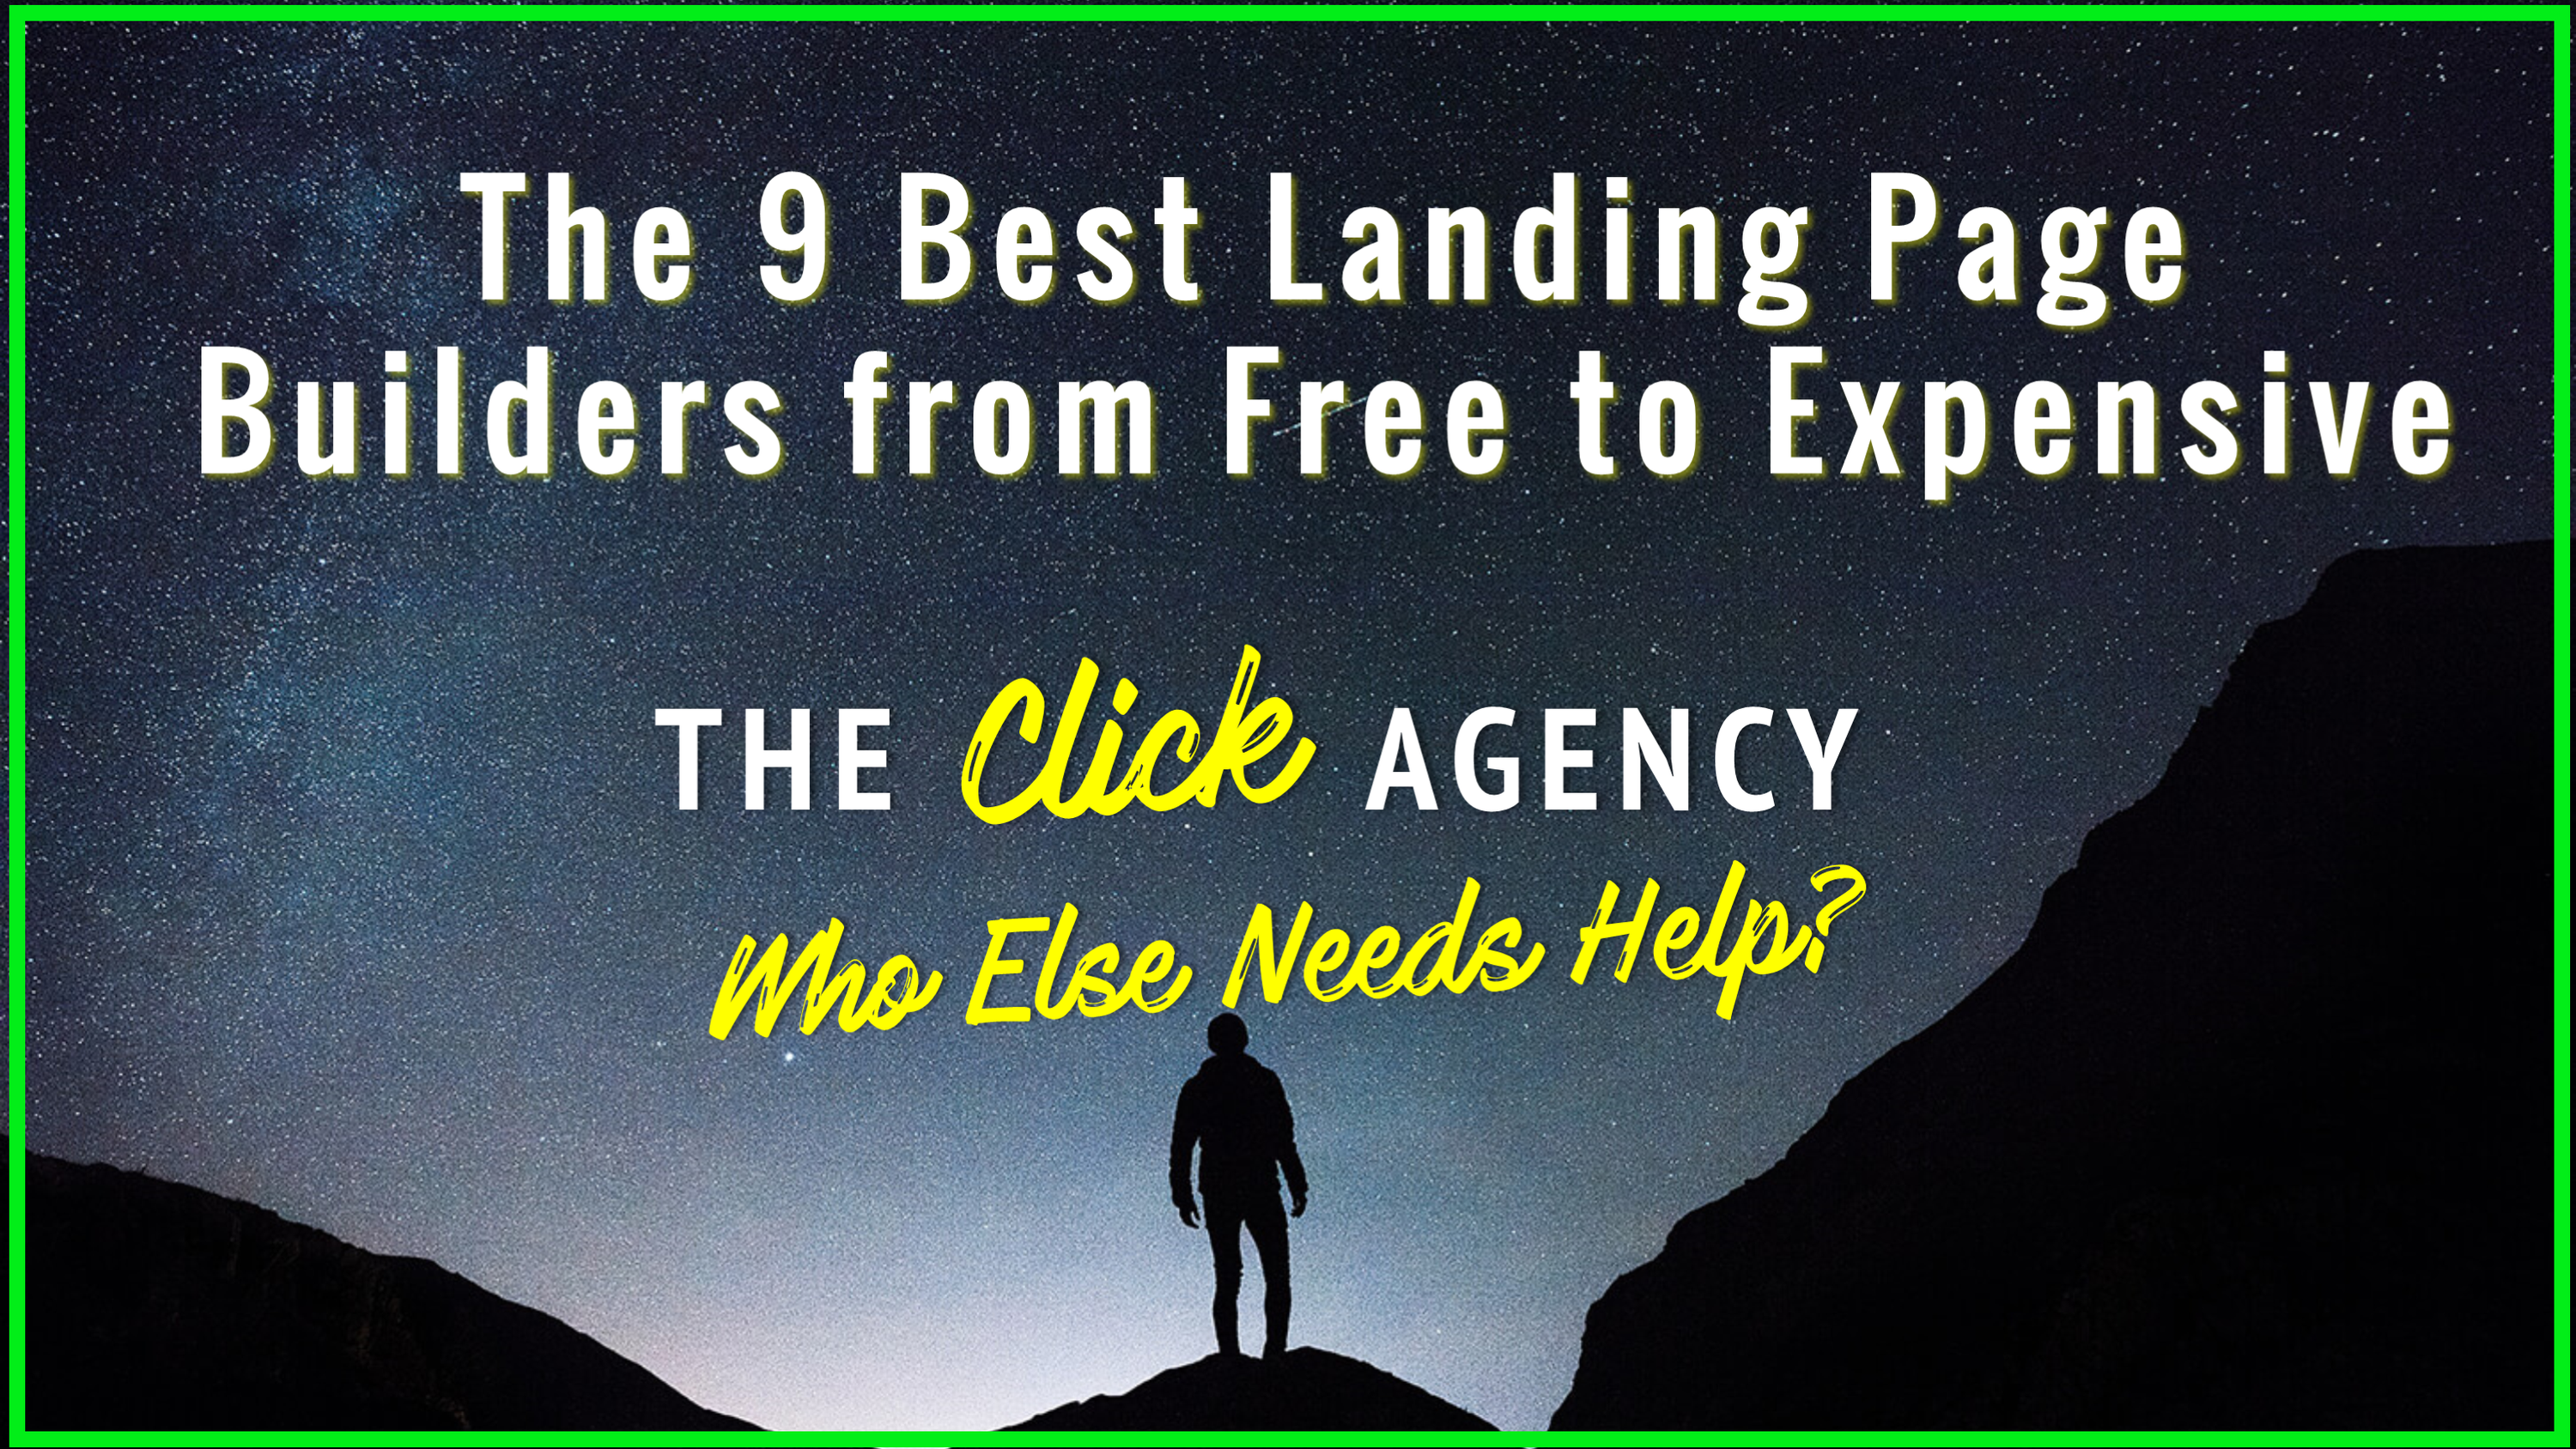 The 9 Best Landing Page Builders from Free to Expensive